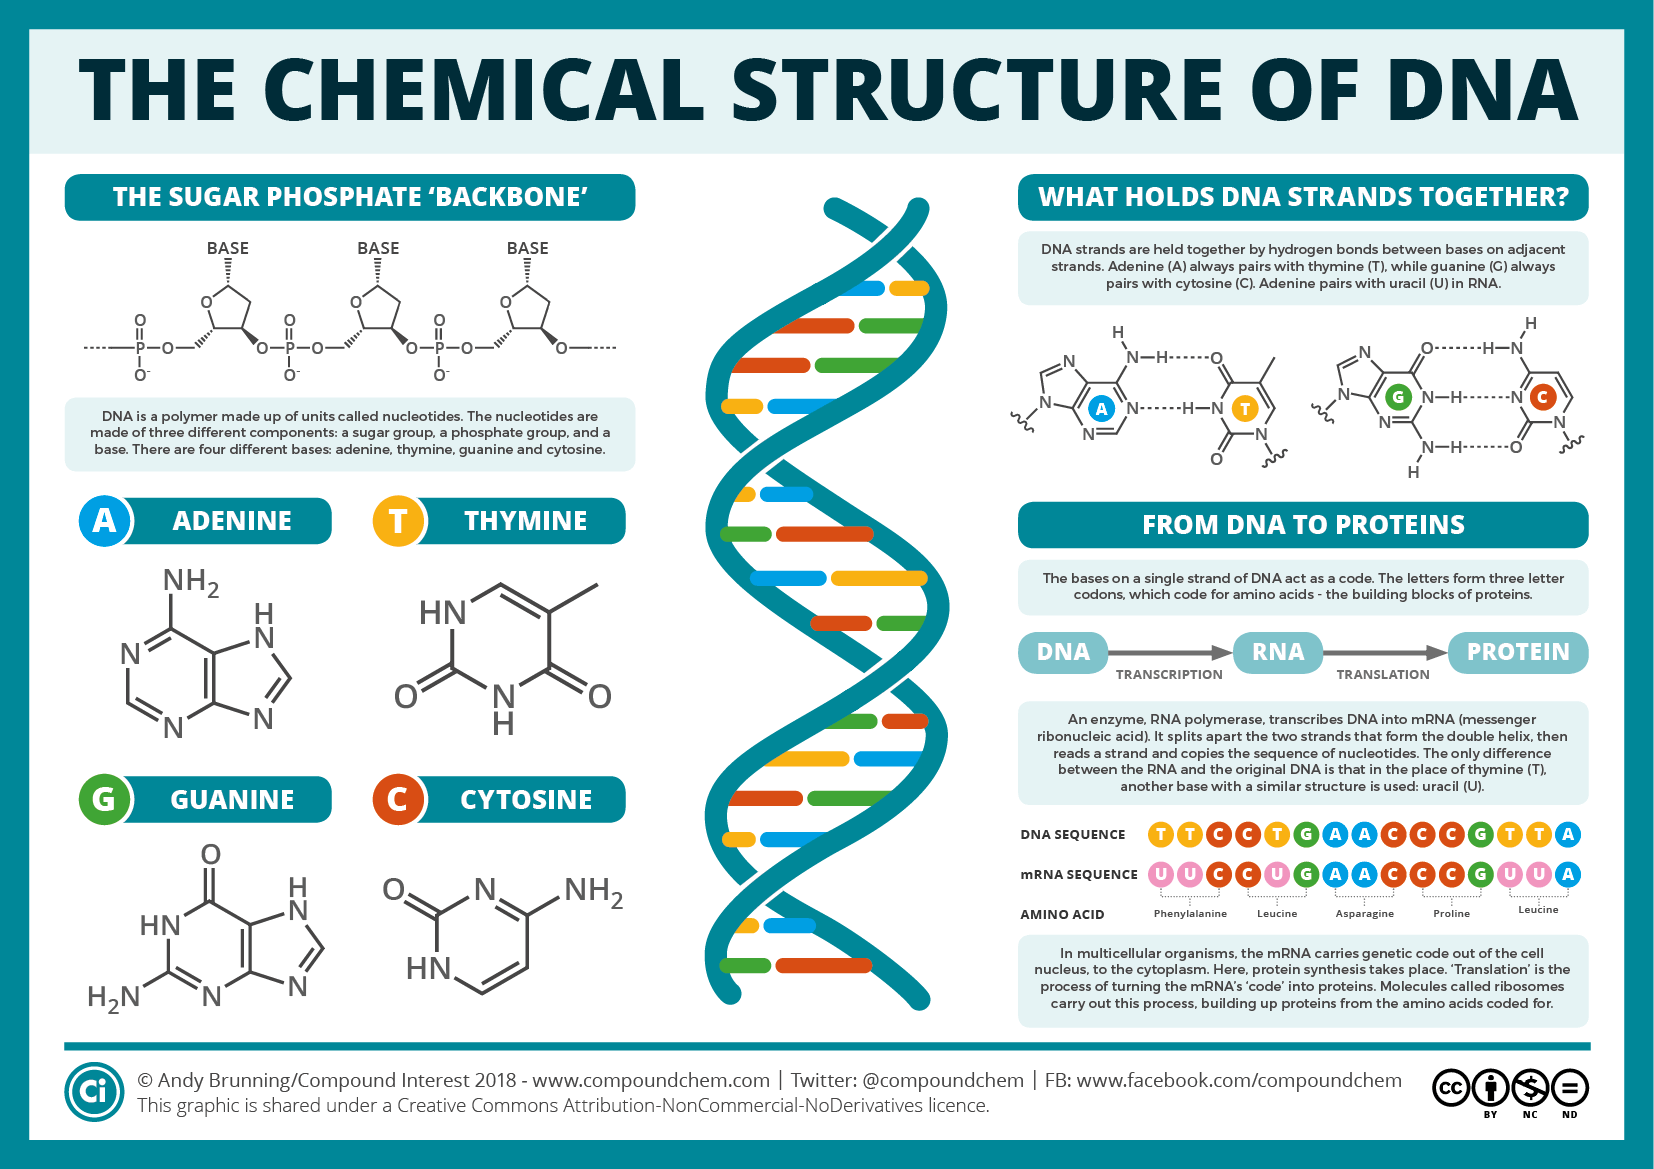 The Chemical Structure of DNA | Compound Interest